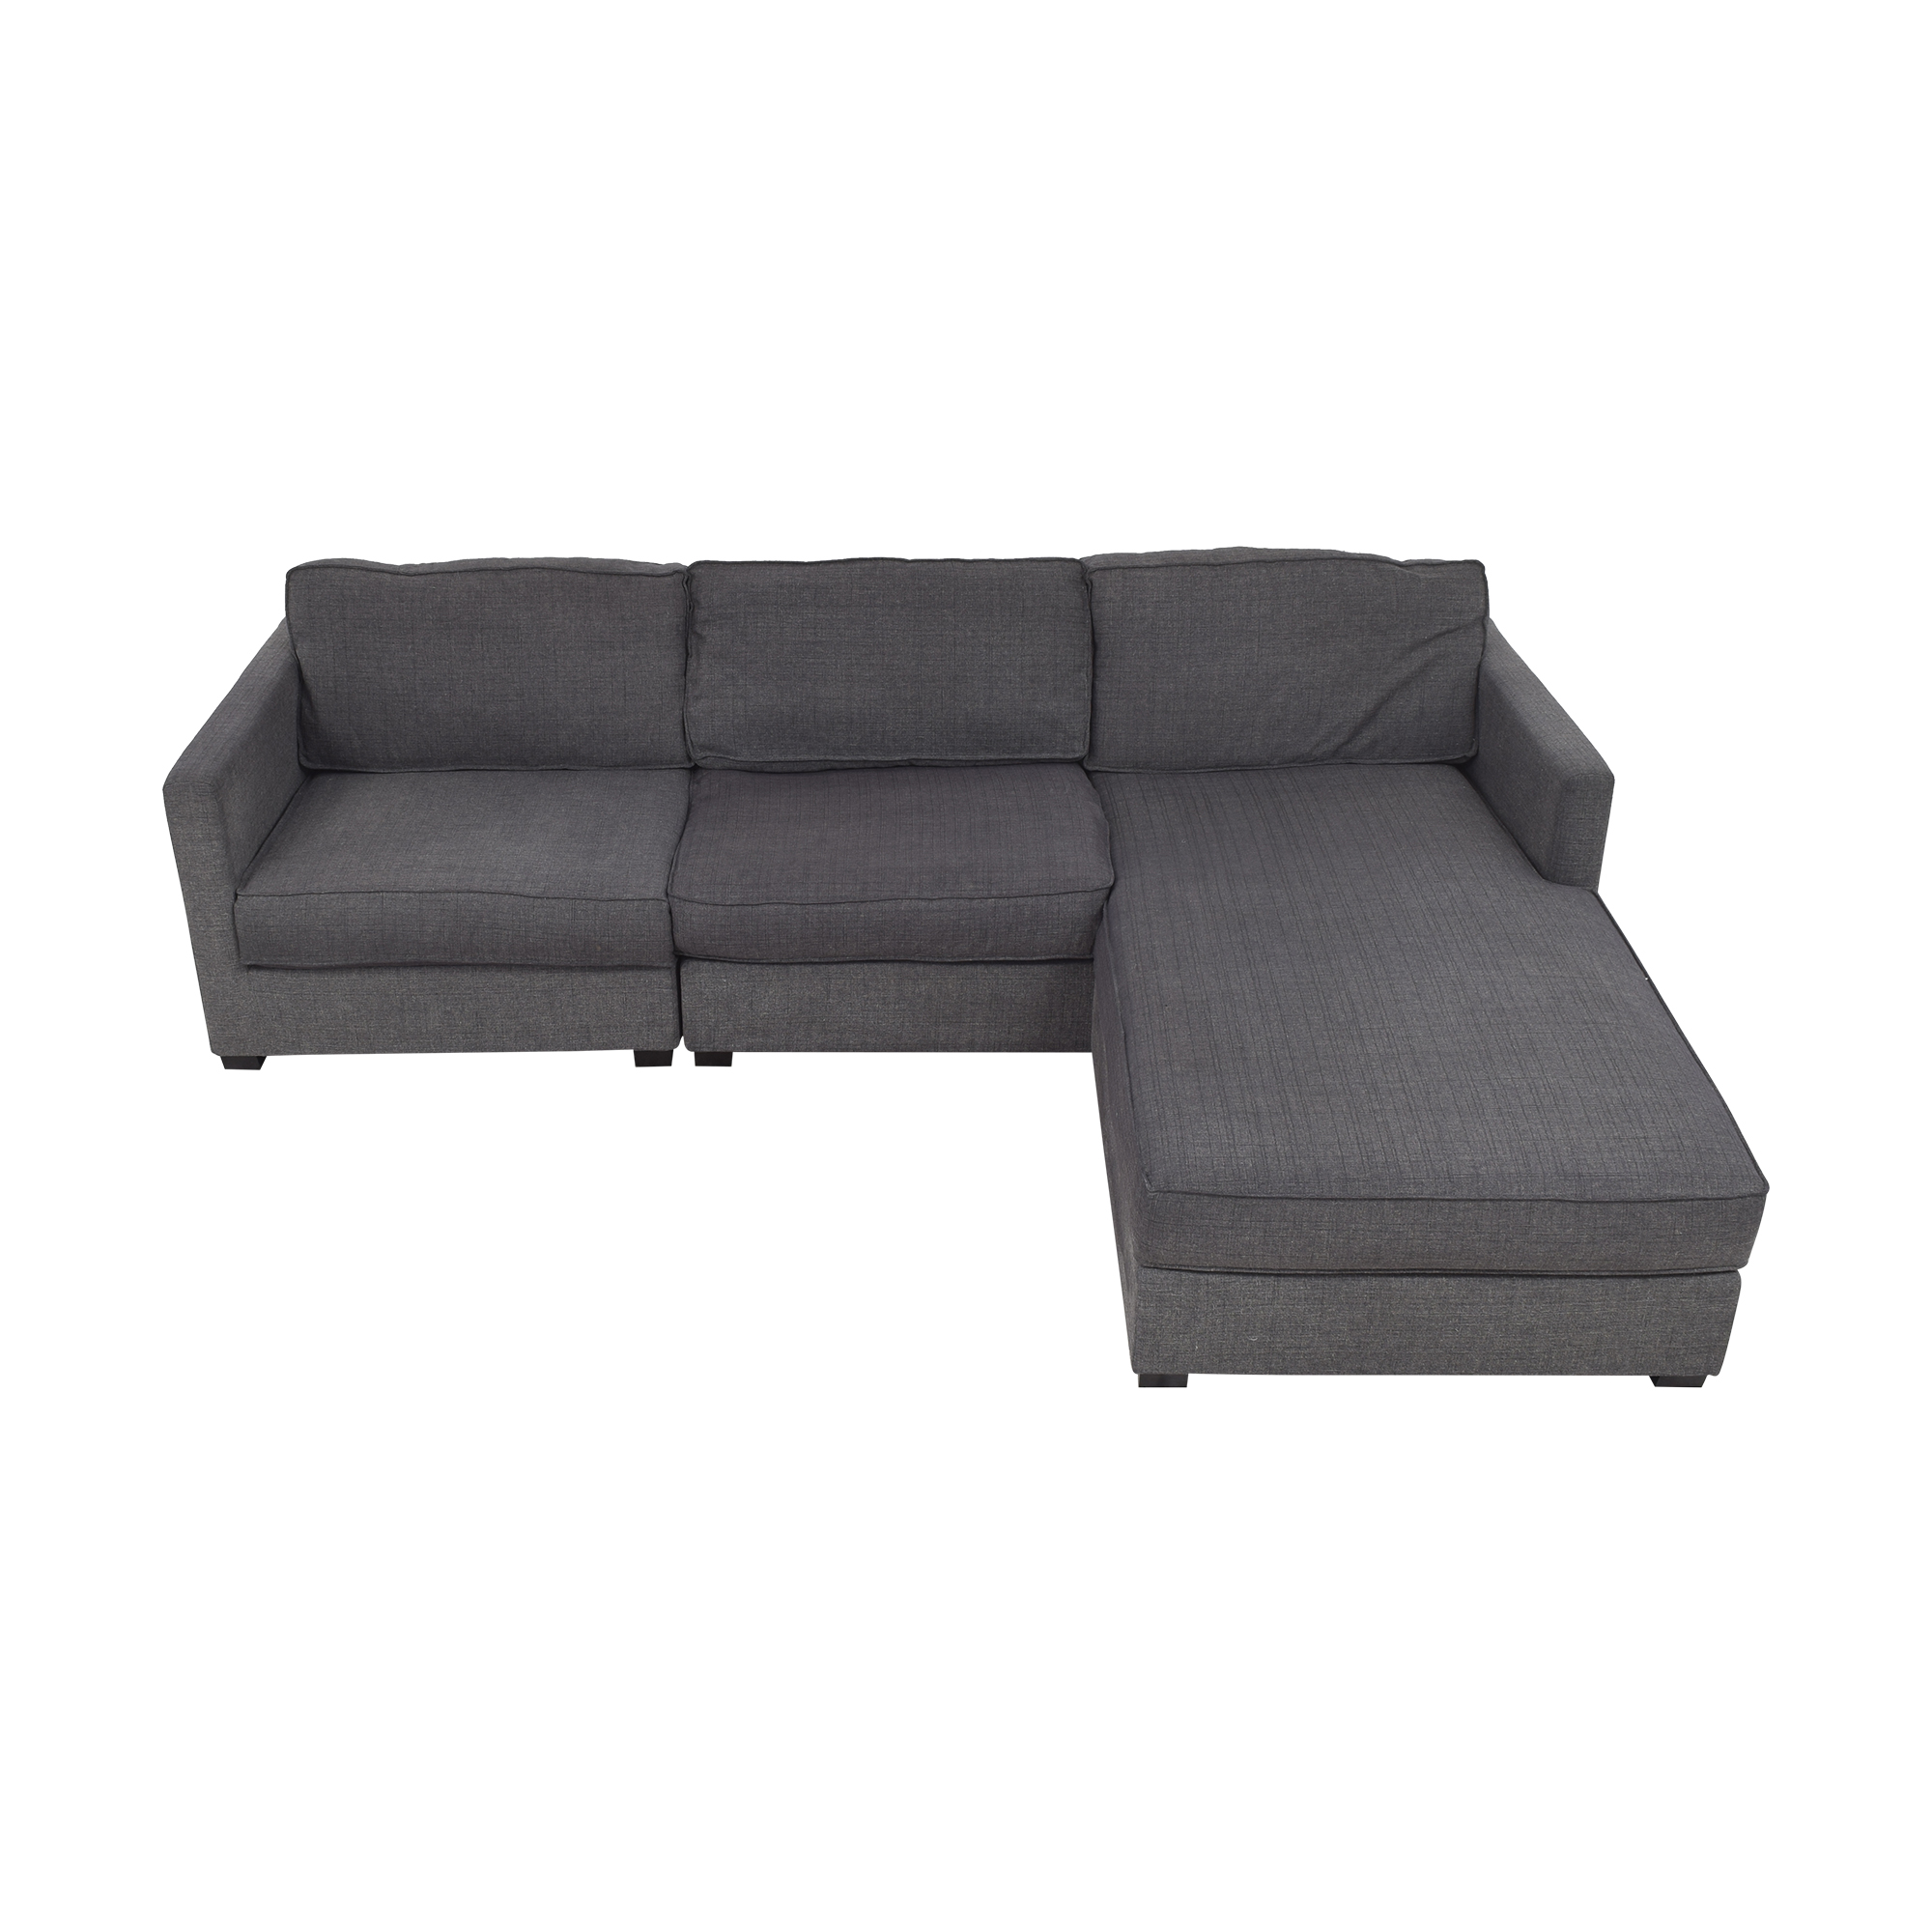 Gus Modern Gus Modern Parkdale Chaise Sectional Sofa coupon